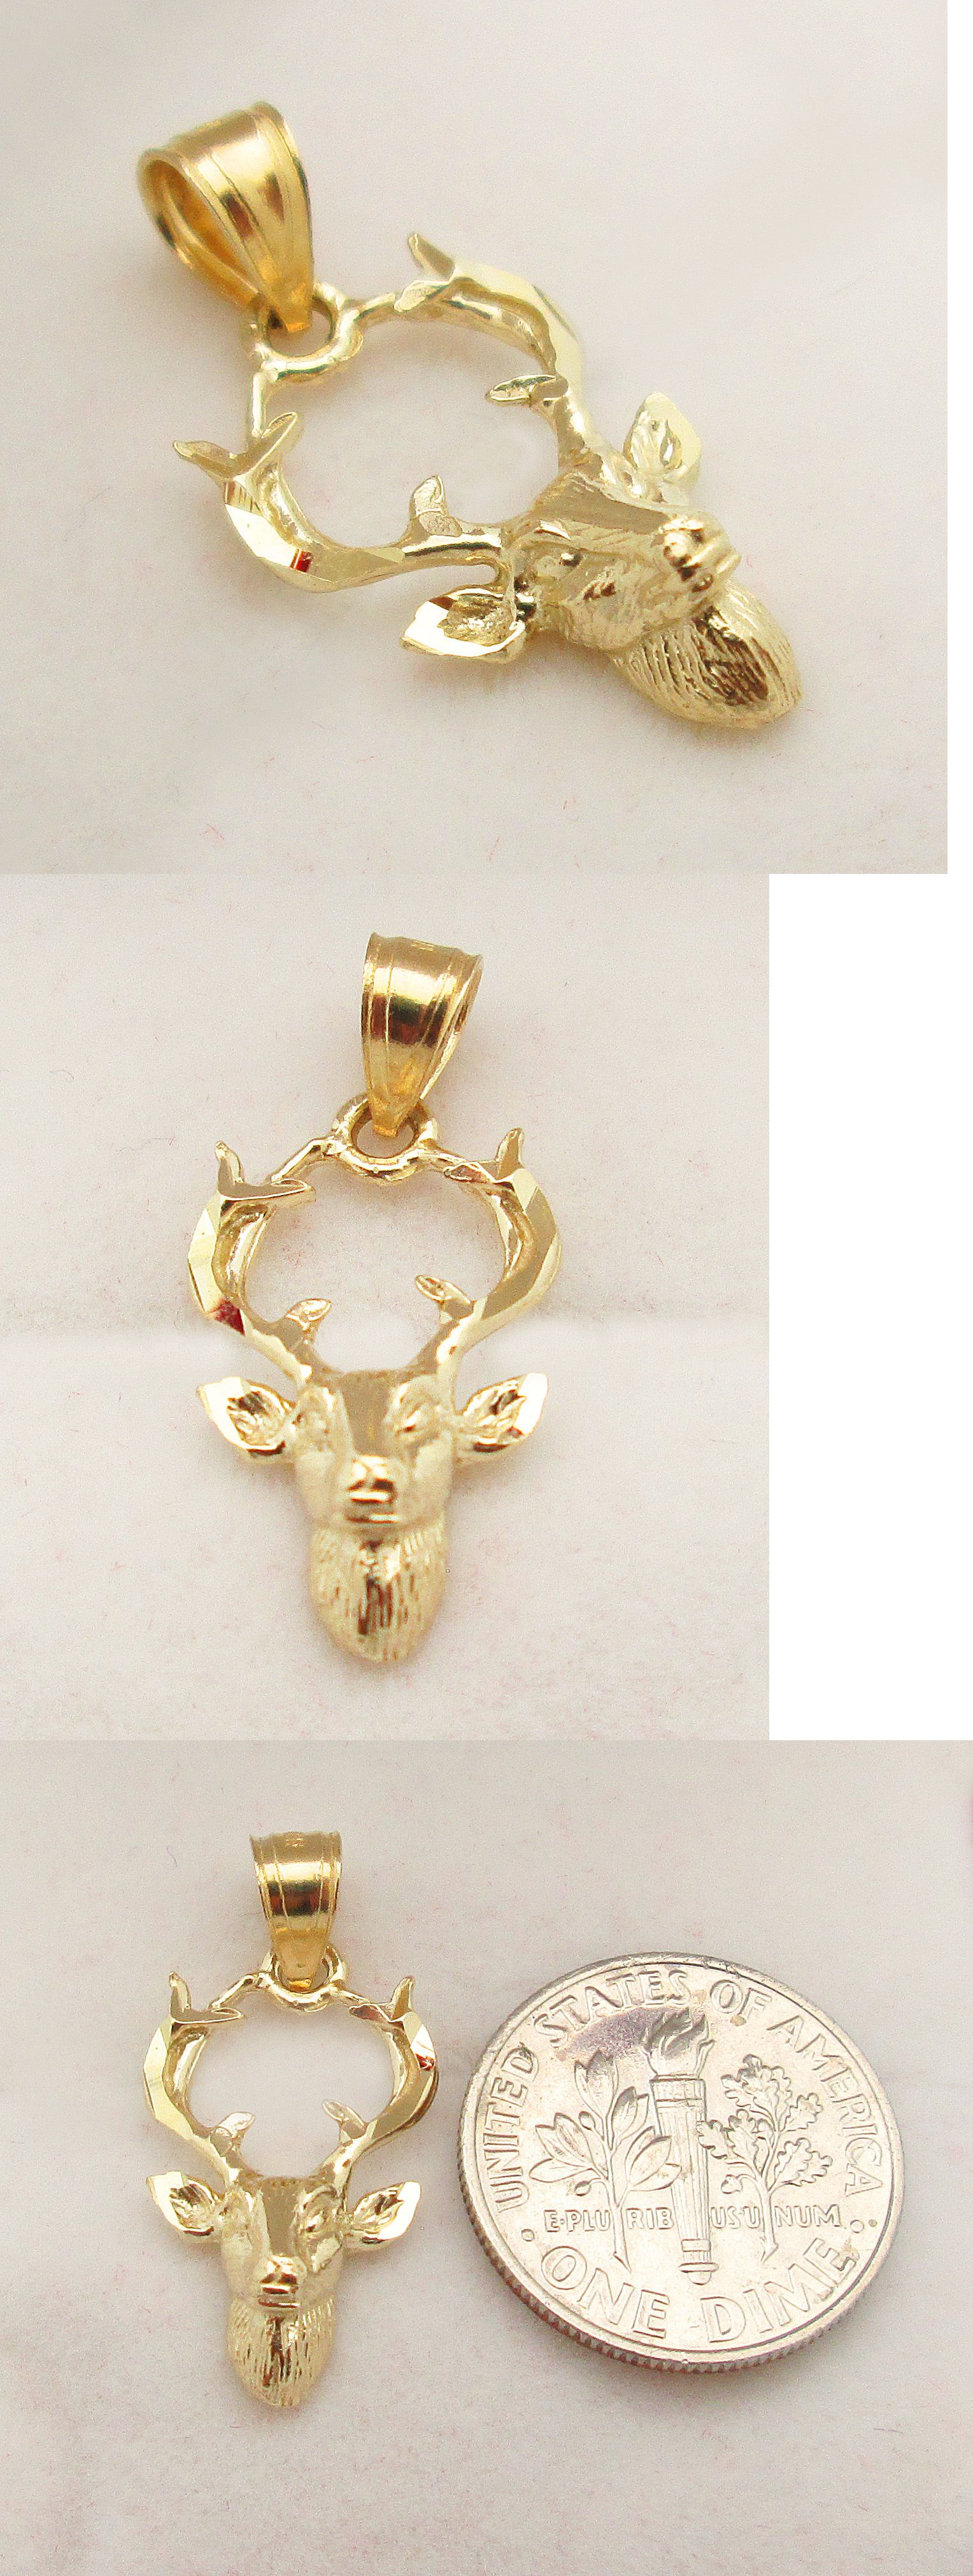 chain gray sterling deer jewelry rollo pendant from pin silver made carved antler wolf